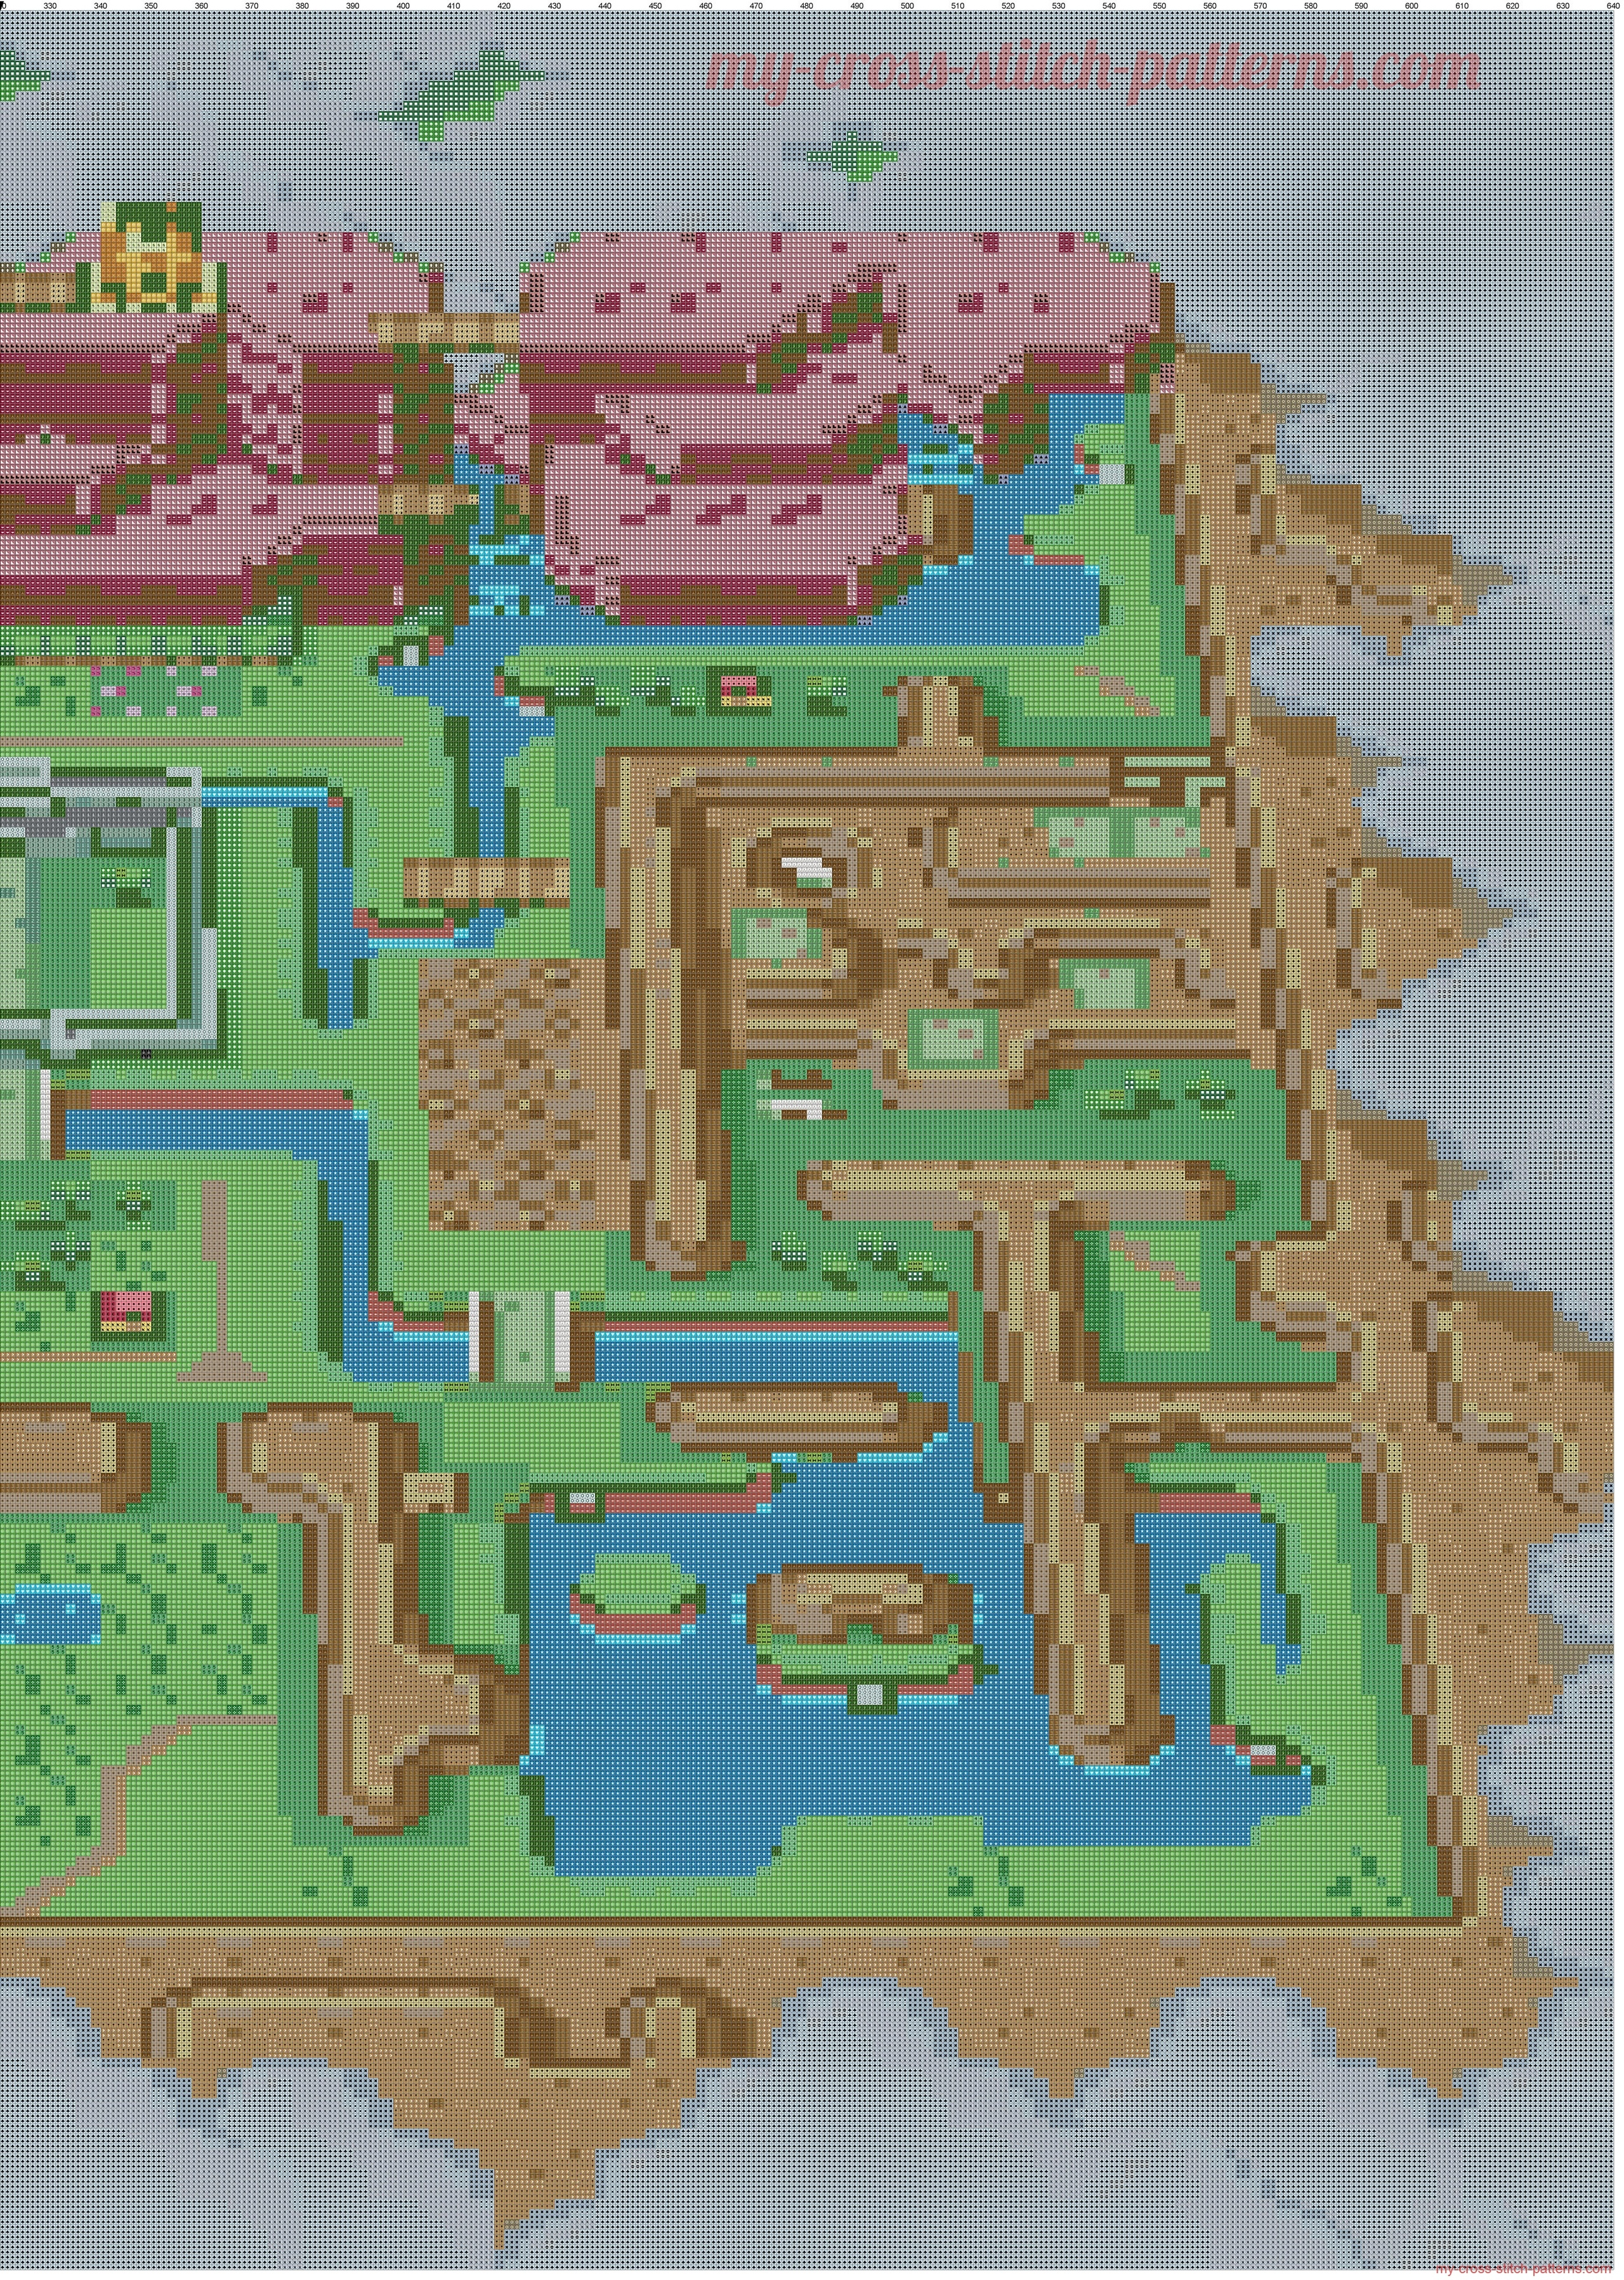 the_legend_of_zelda_a_link_to_the_past_map_cross_stitch_pattern_2